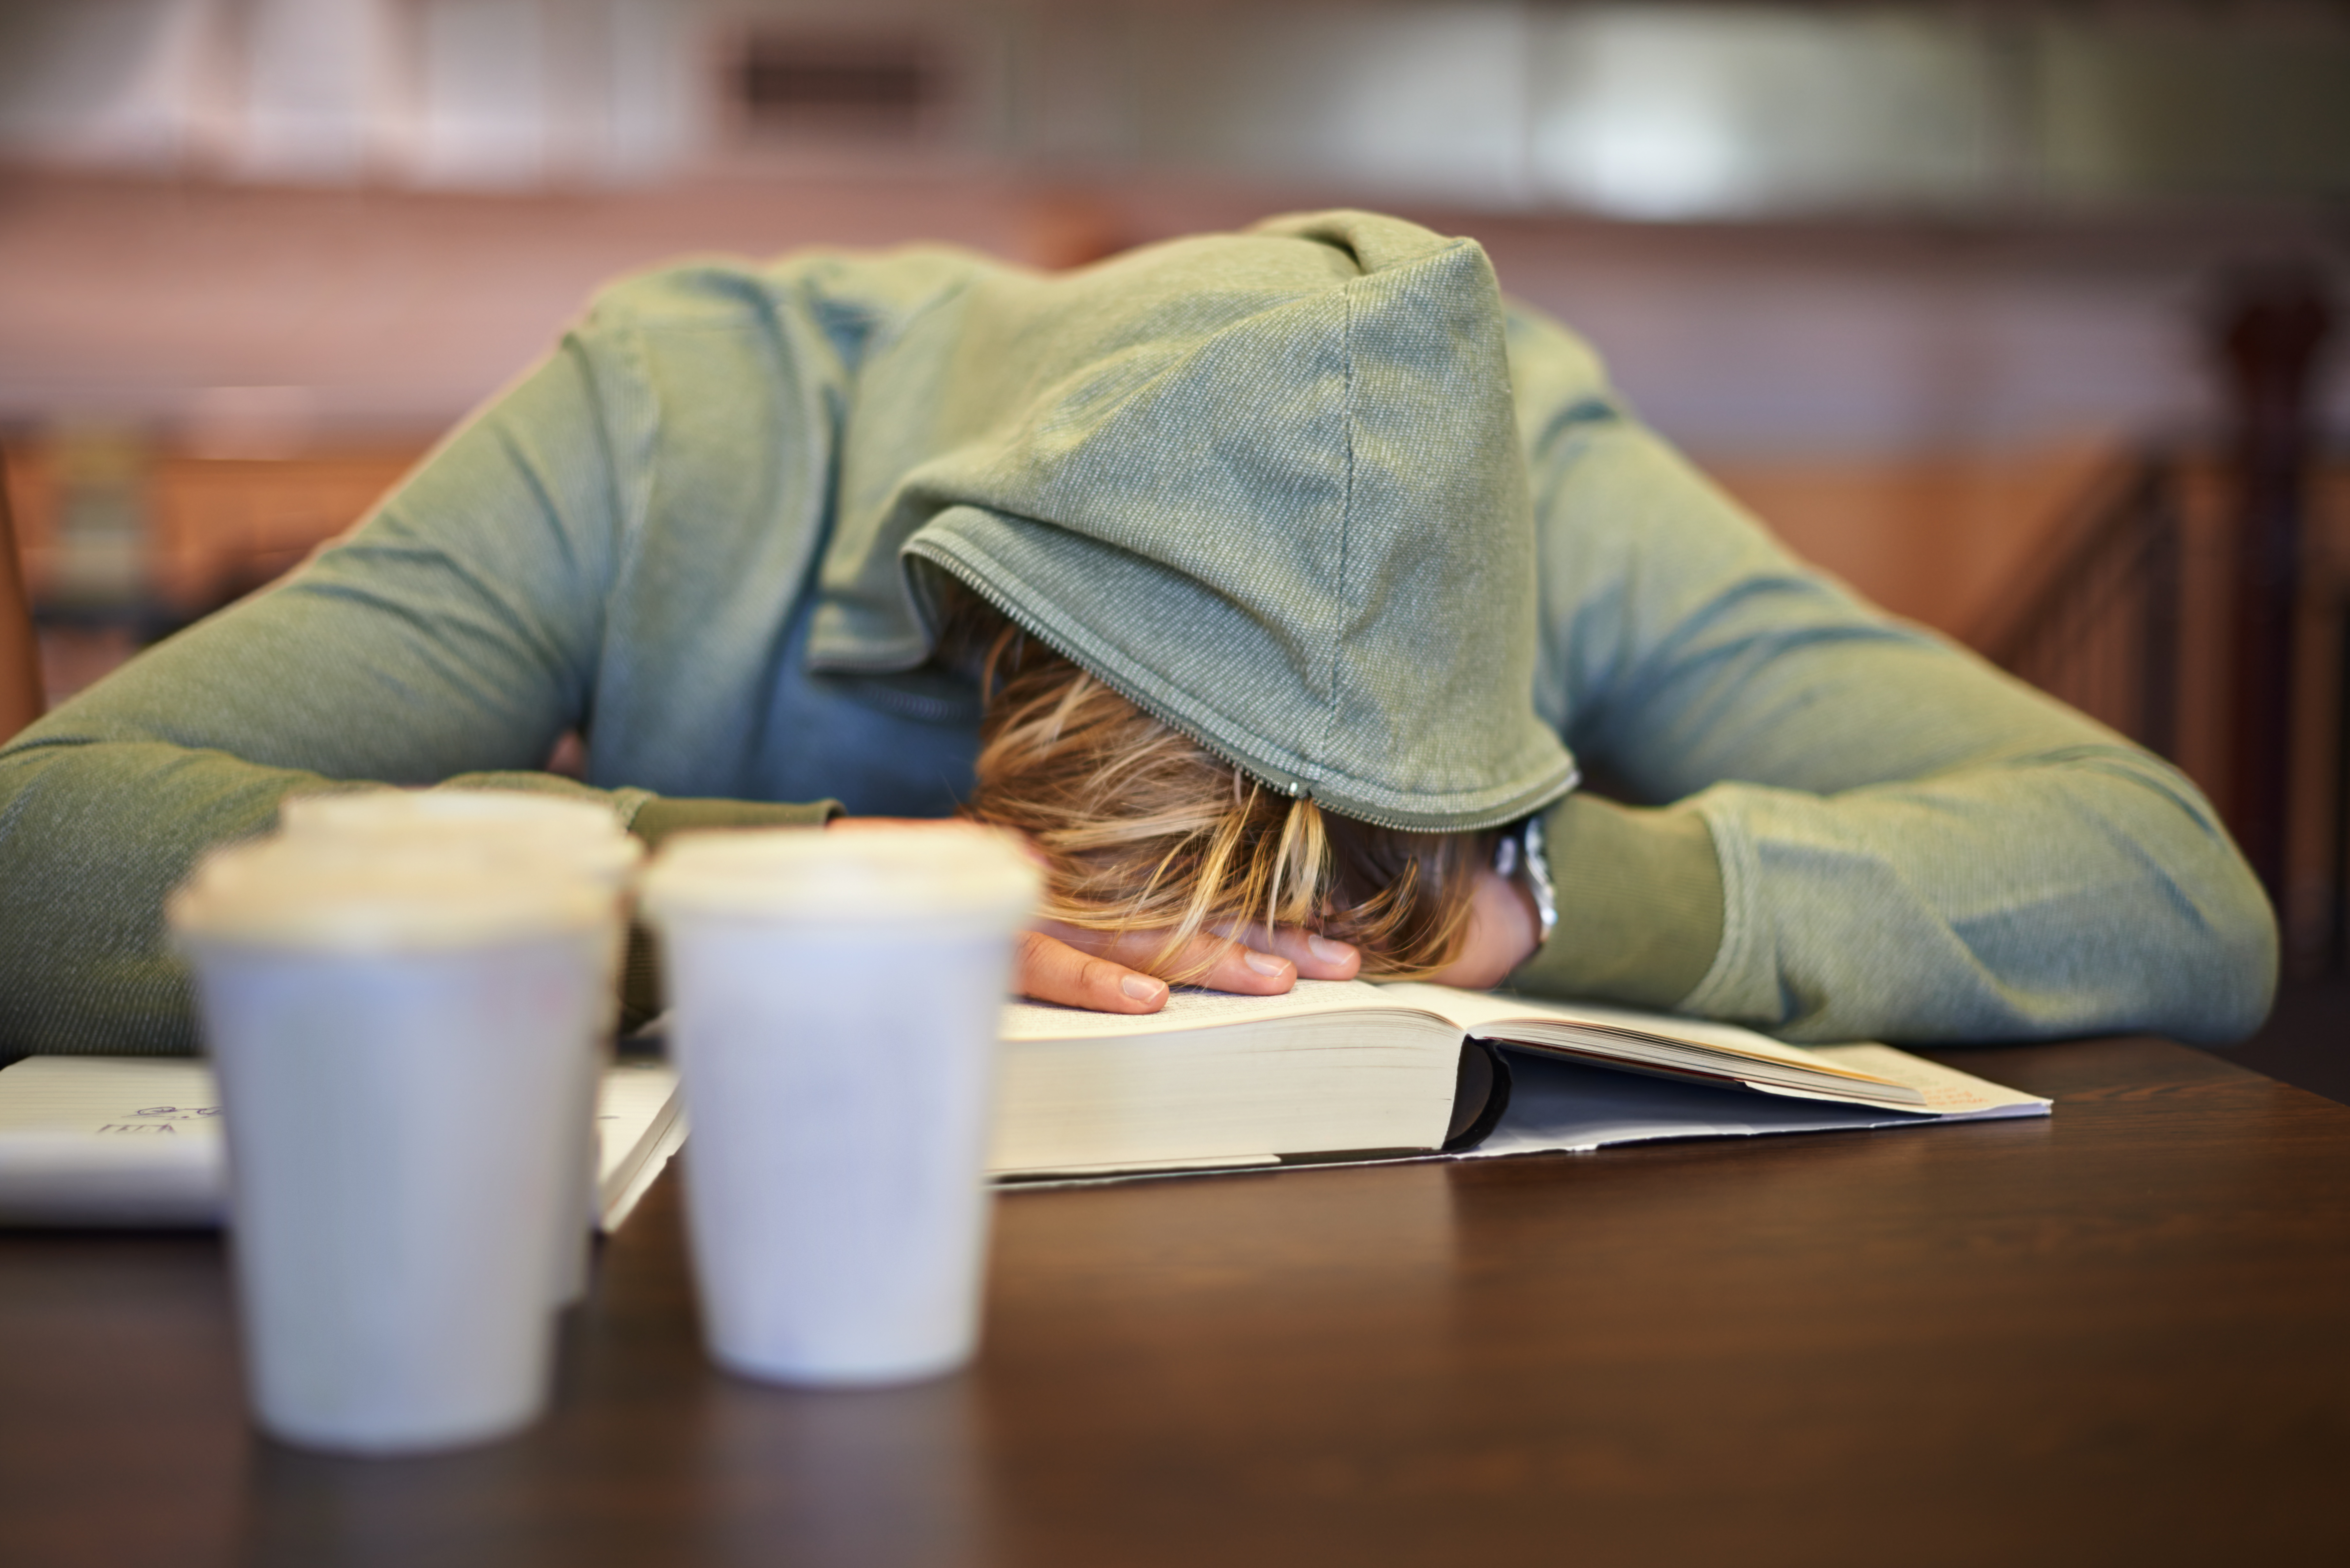 A young student asleep at school. (Getty Images)